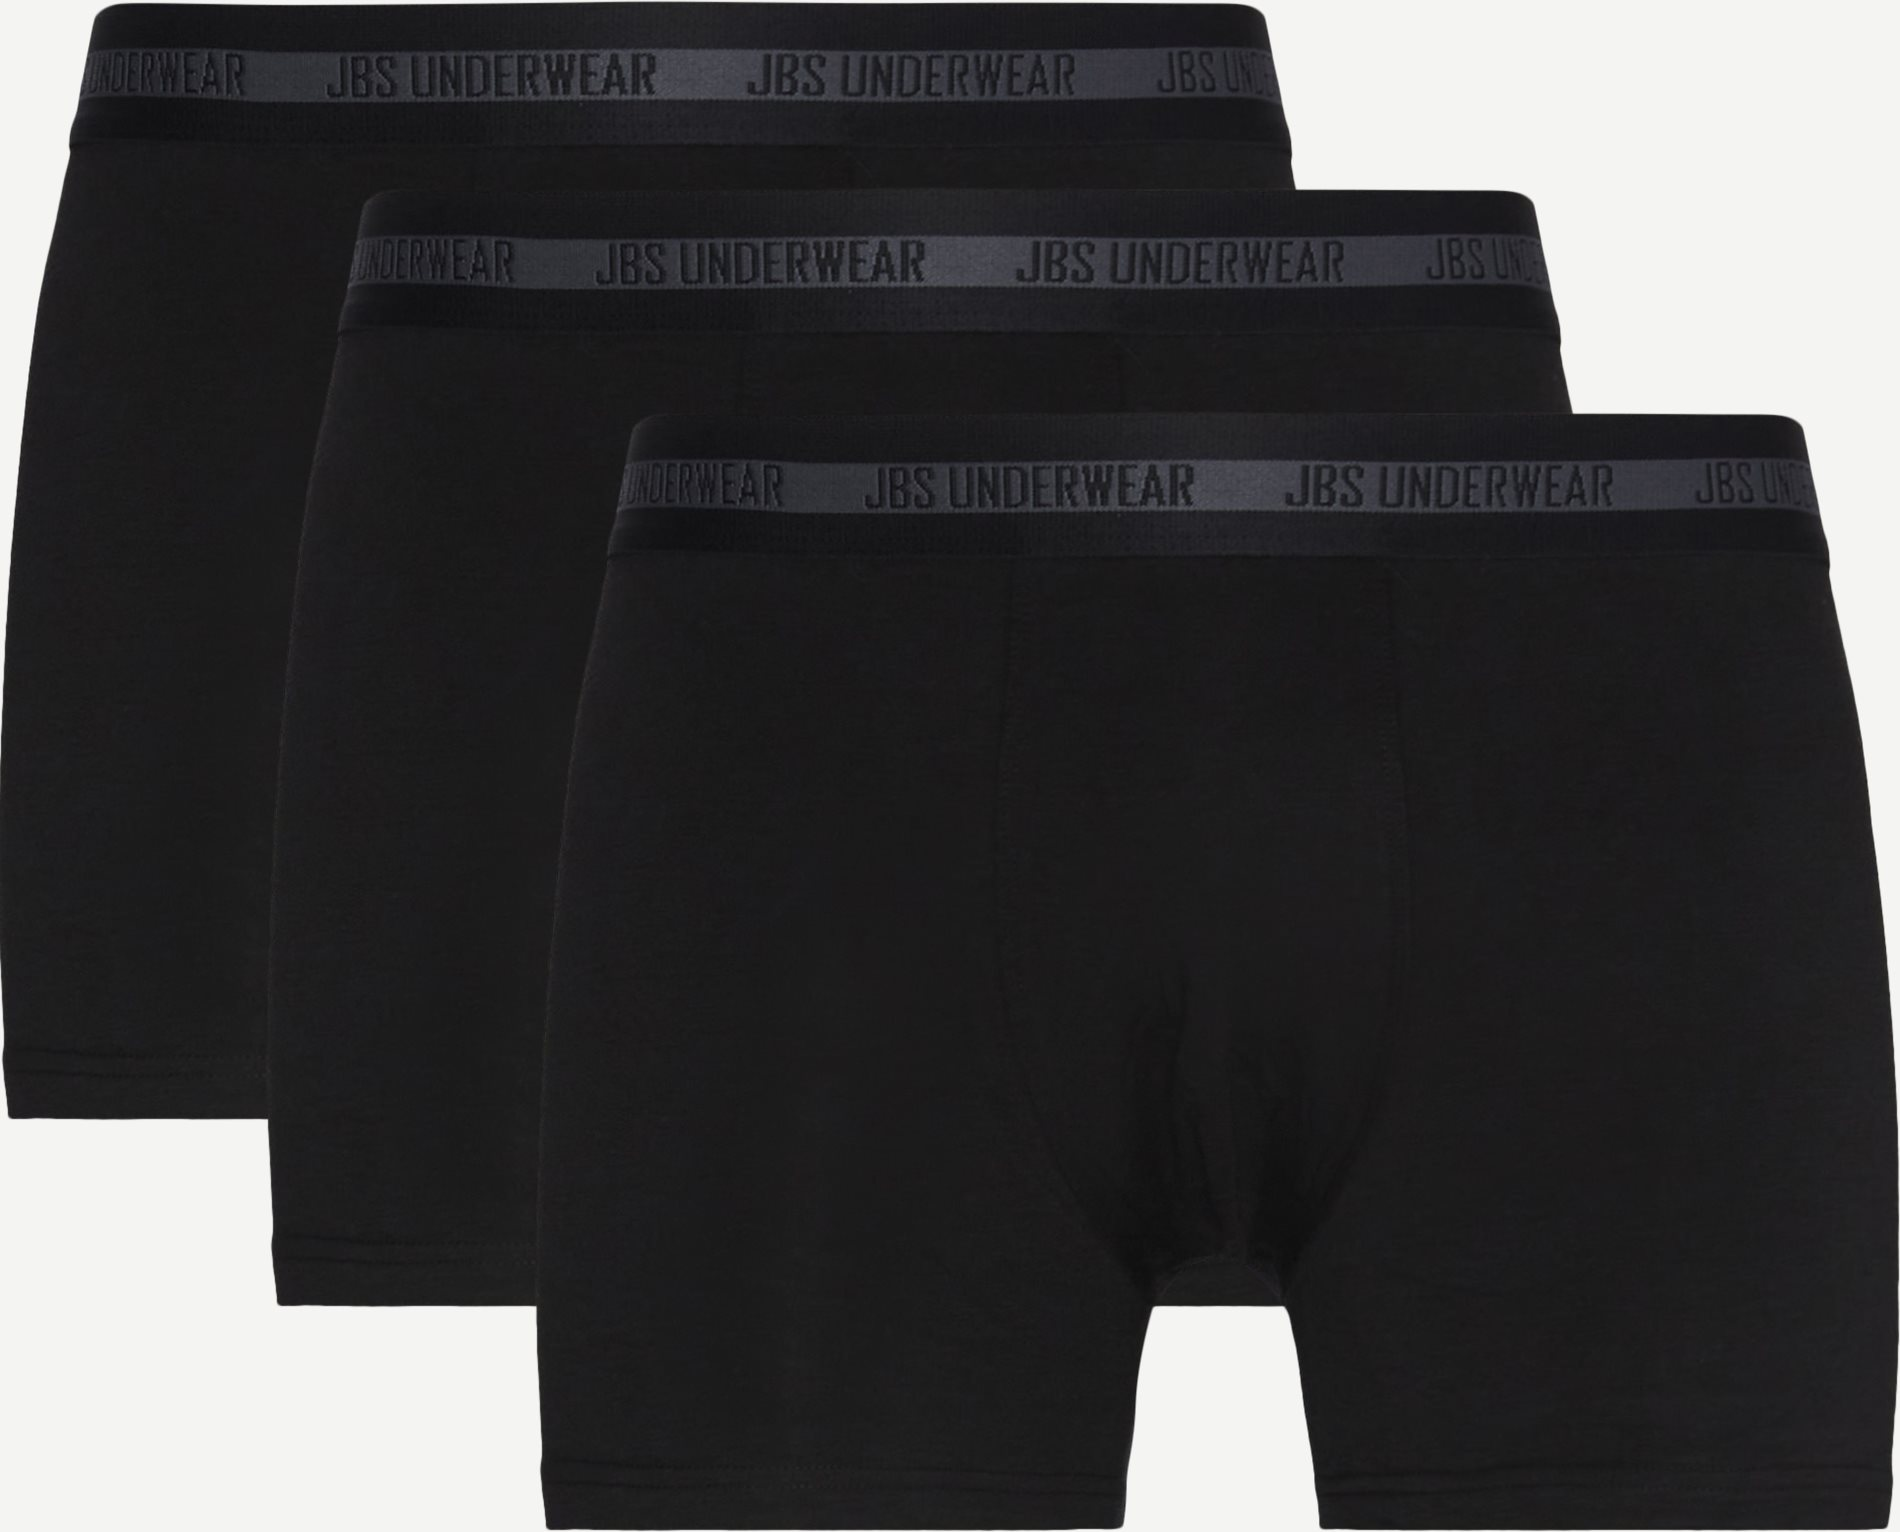 3-Pack Bambus Tights - Underwear - Regular - Black